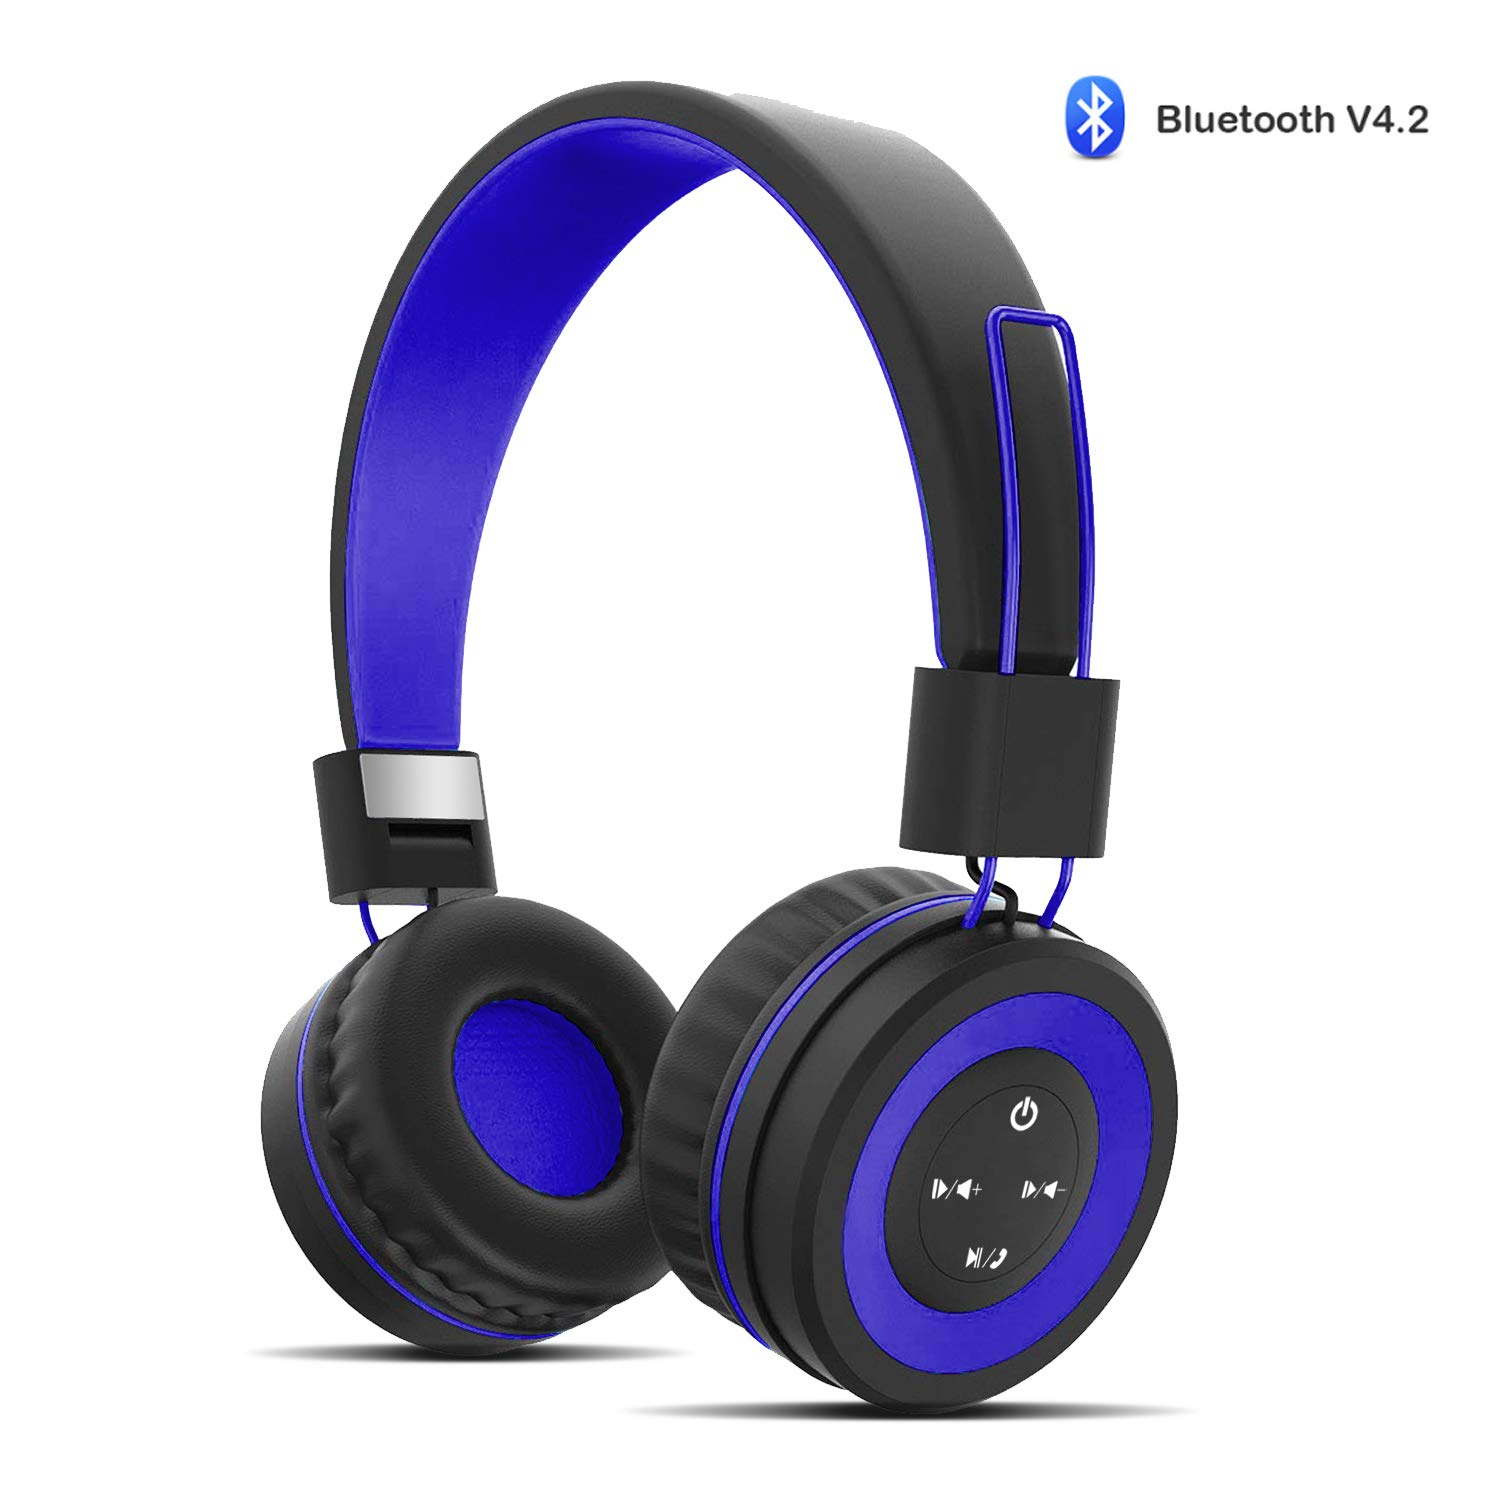 Fanxieast Kids Headphones Foldable Wired Over Ear Headphone for Kids Children Toddlers Boy Girl – 3.5mm Jack 95 dB Volume Limited Wireless